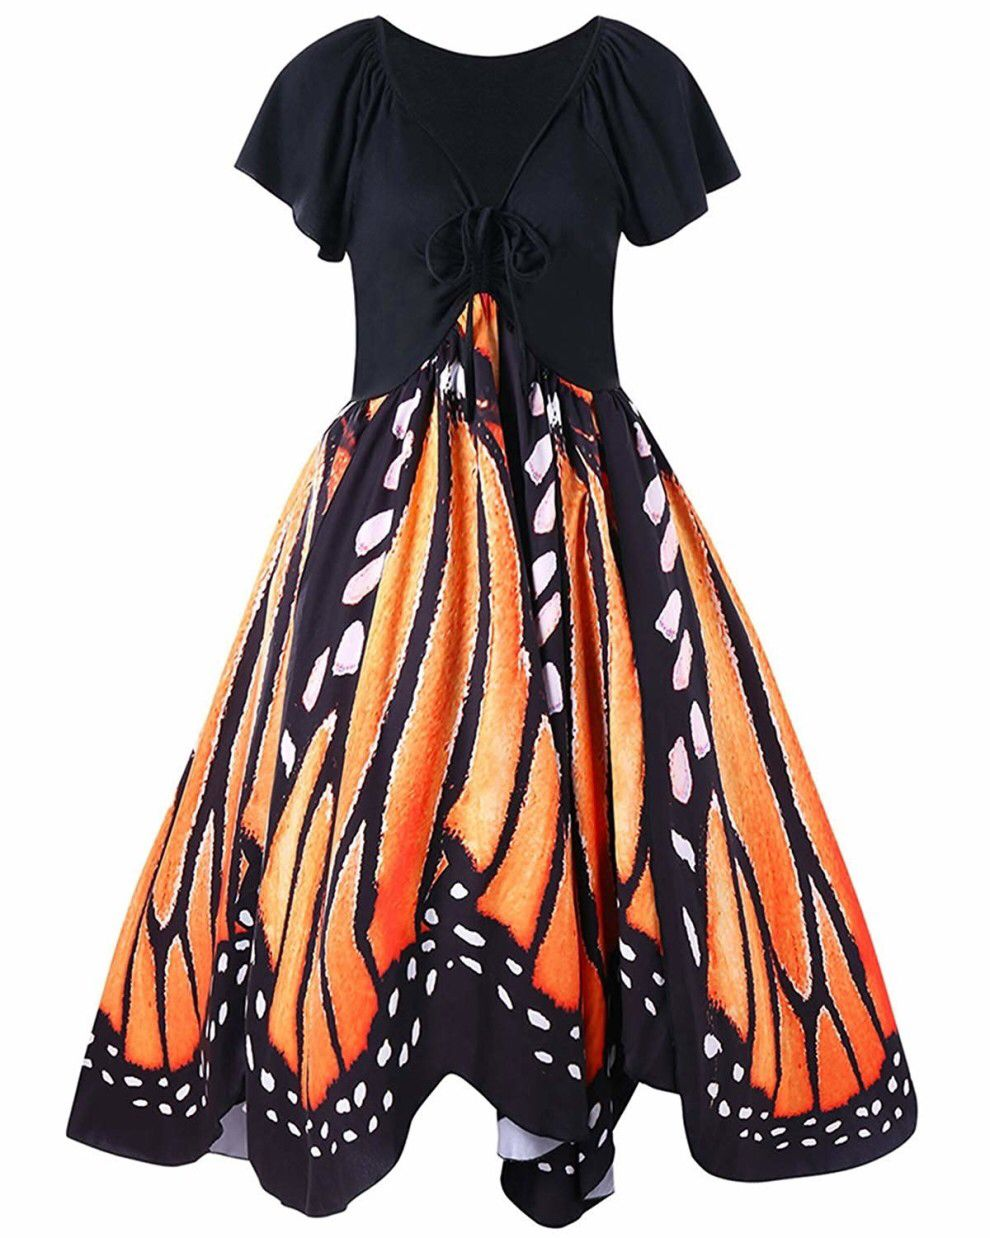 35 Pieces Of Clothing That Are As Loud As You Are Butterfly Print Dress Plus Size Dresses Plus Size Outfits [ 1238 x 990 Pixel ]